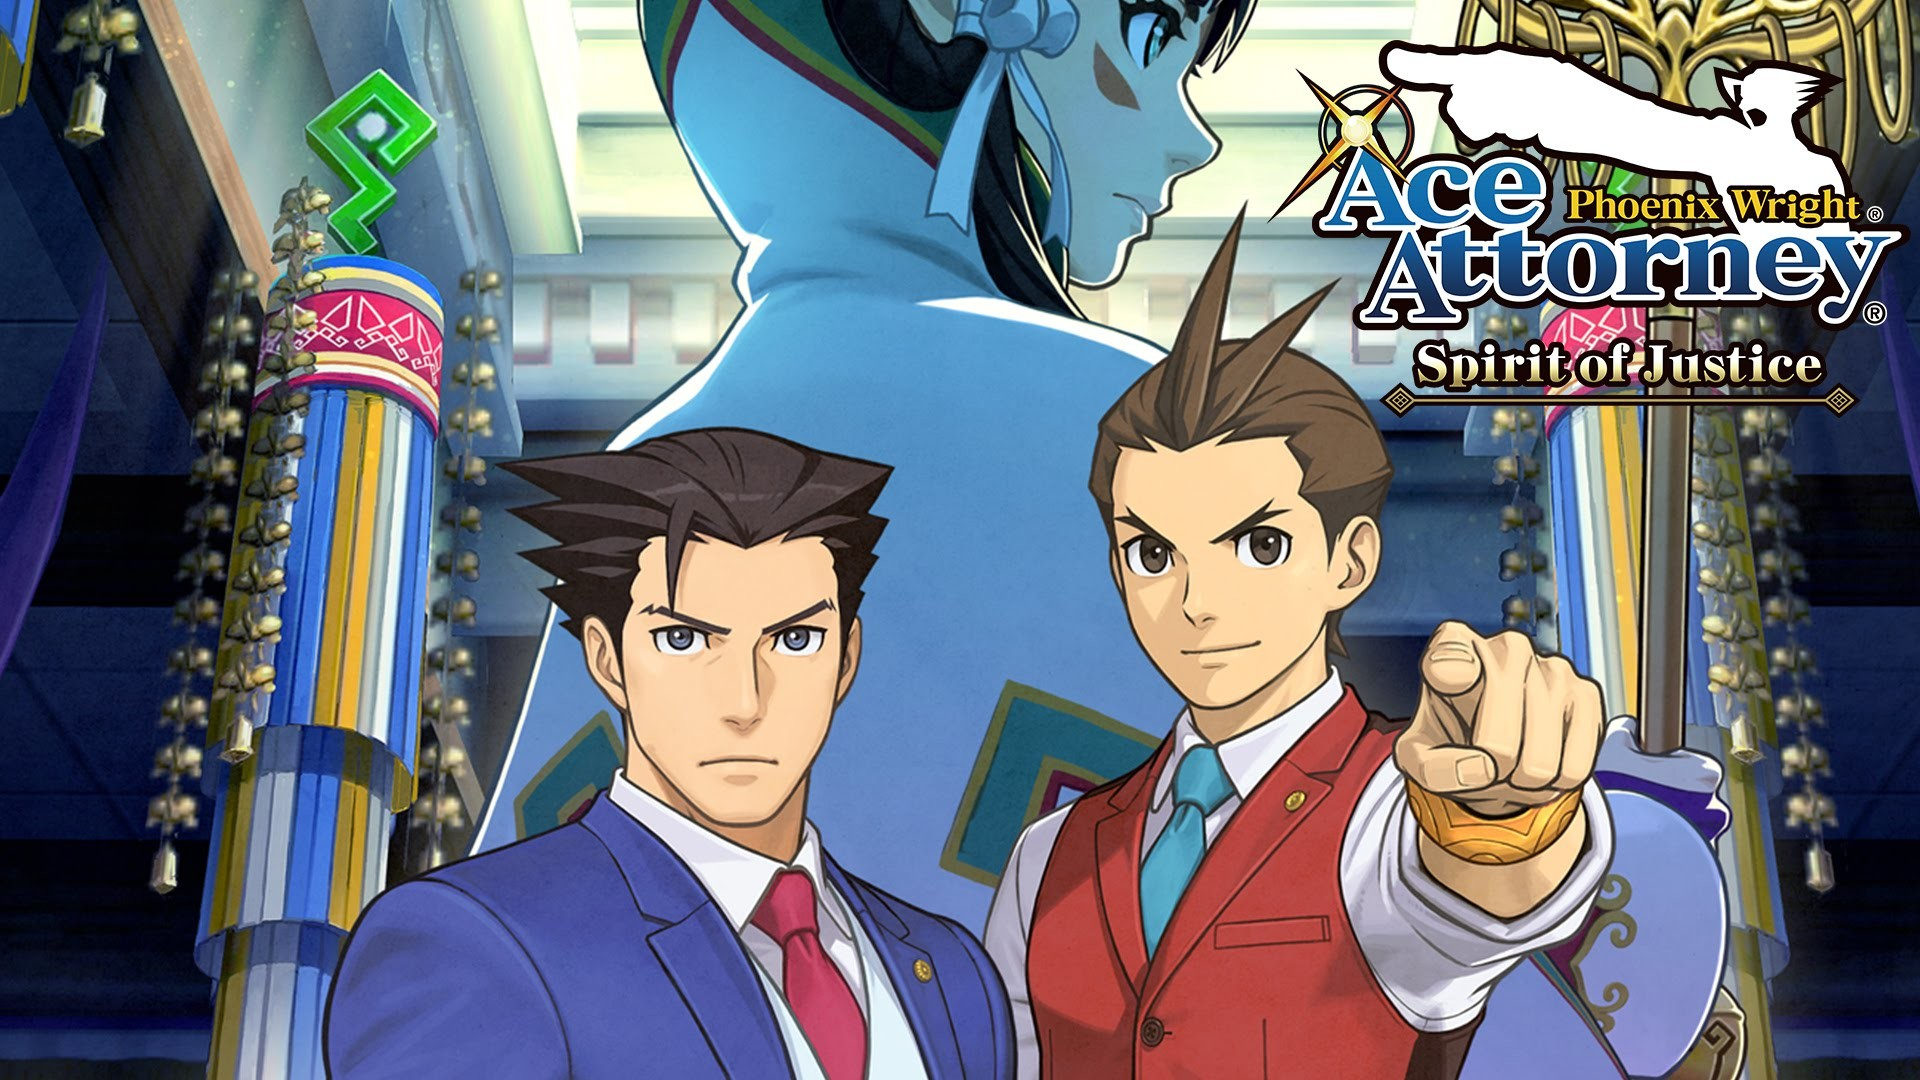 1920x1080 Phoenix Wright: Ace Attorney - Spirit of Justice Trailer